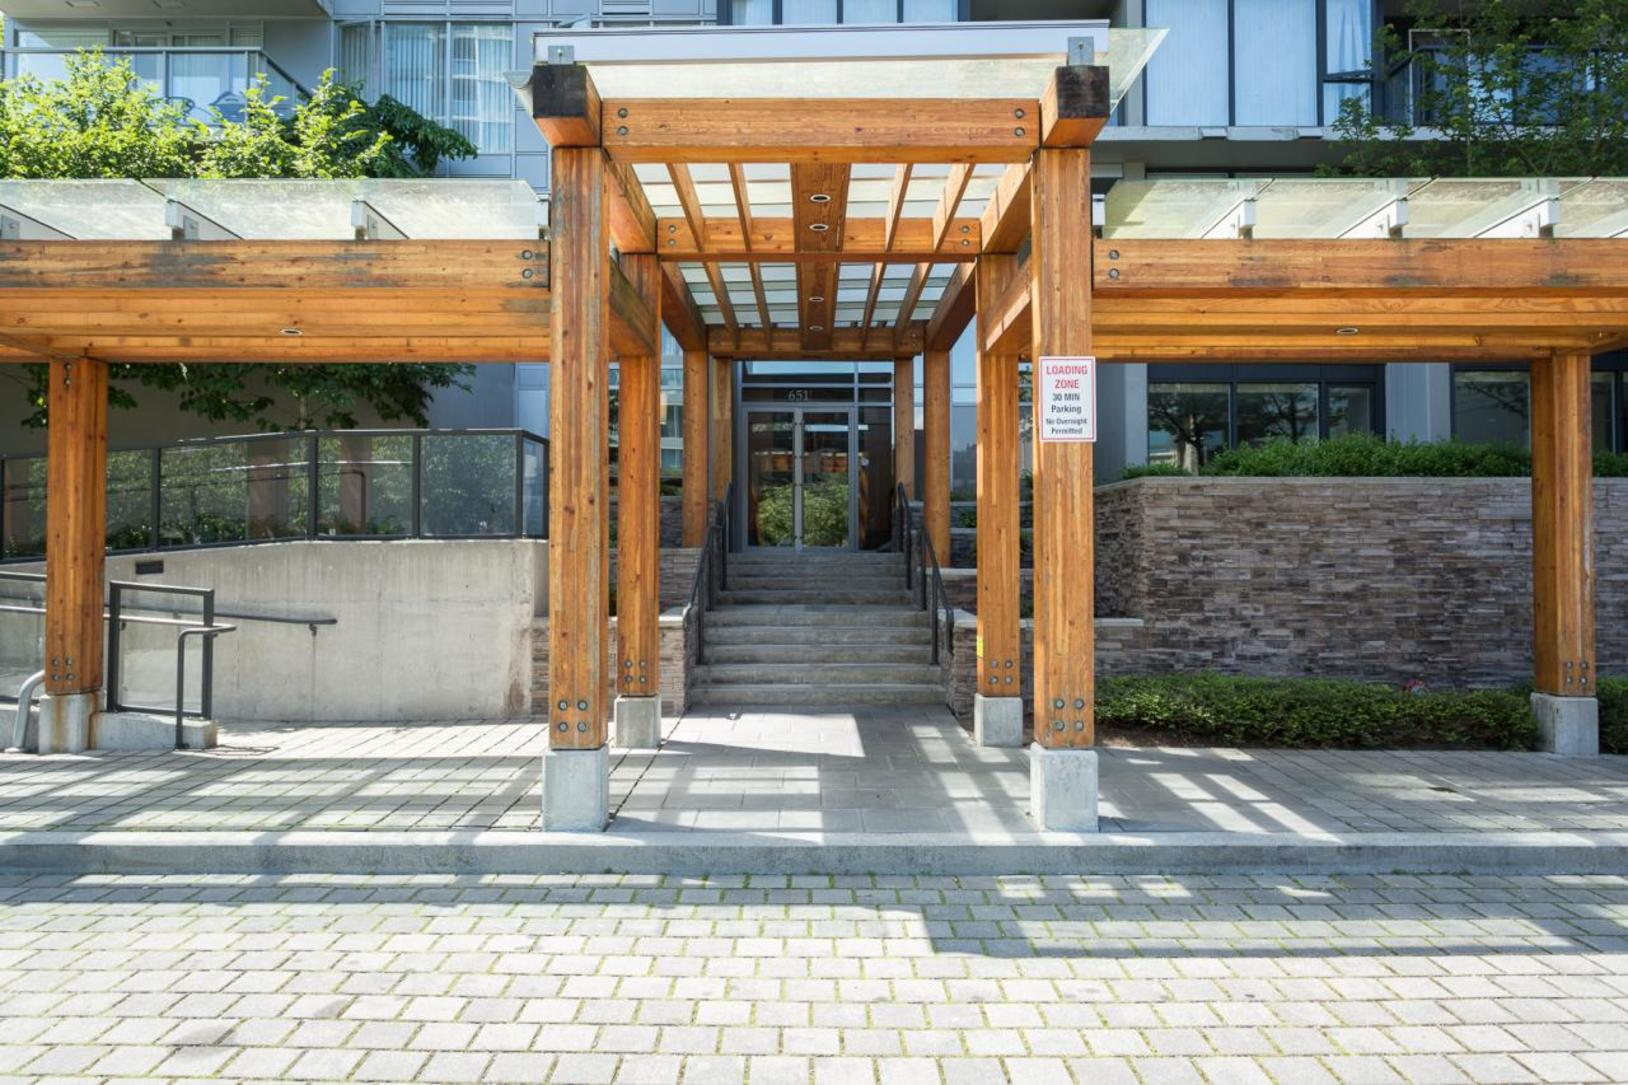 Building's main entrance at 1802-651 Nootkaway Street, Port Moody